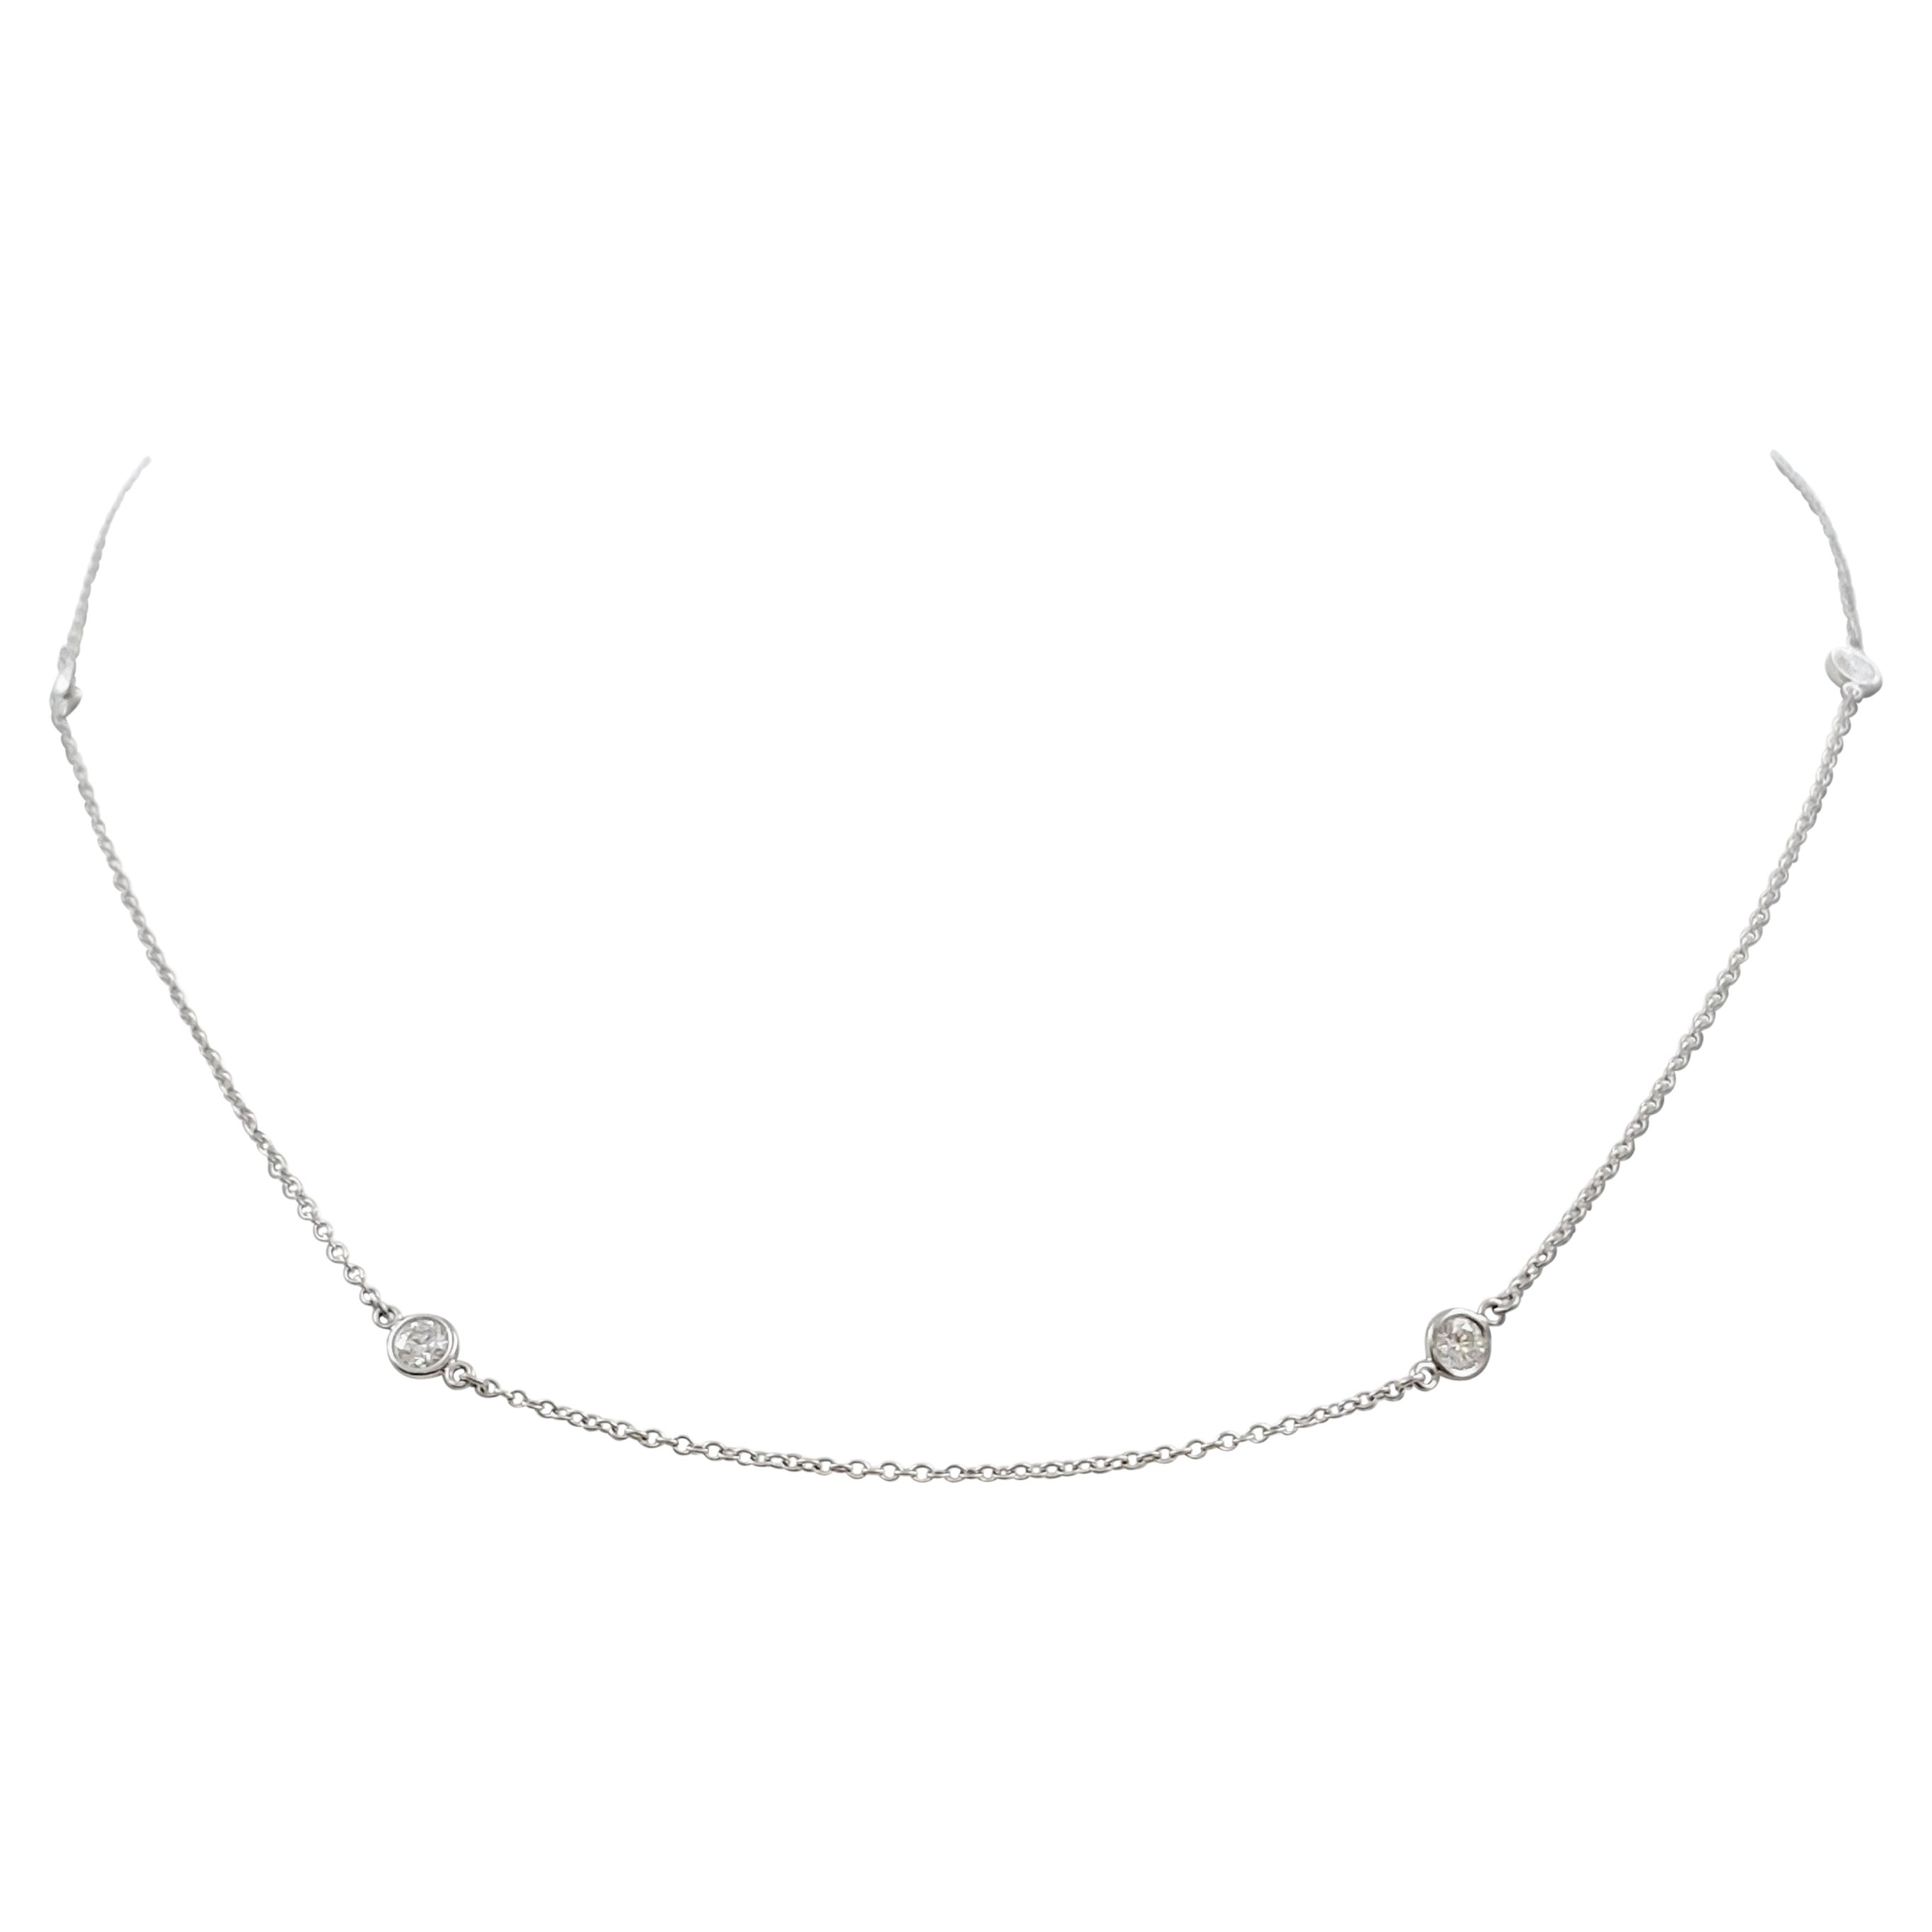 Elsa Peretti for Tiffany & Co. Platinum 'Diamonds by the Yard' Necklace